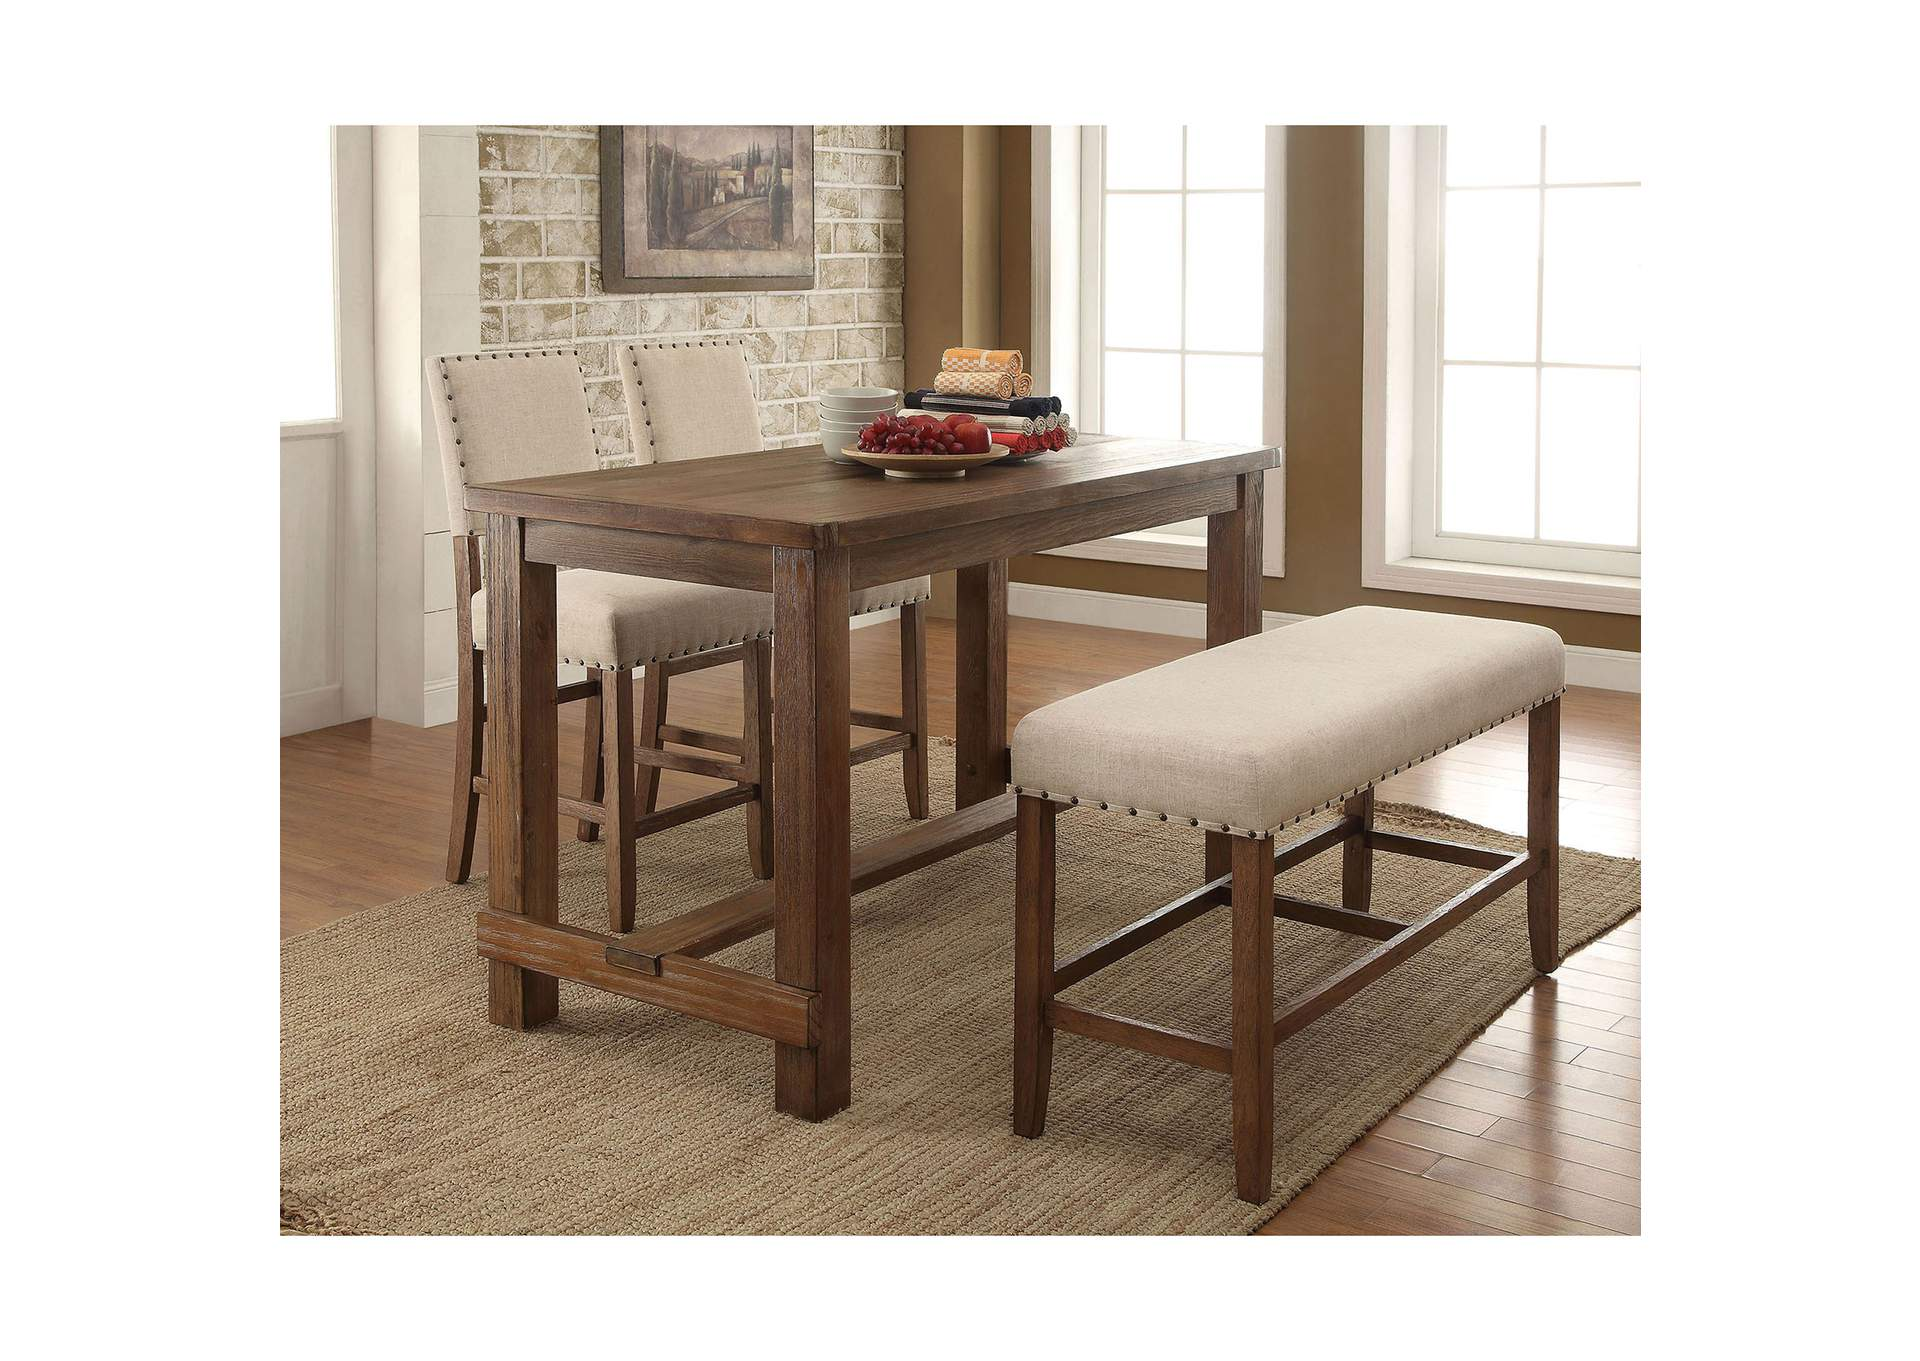 Sania Rustic Oak Counter Height Table w/Bench and 2 Counter Height Chairs,Furniture of America